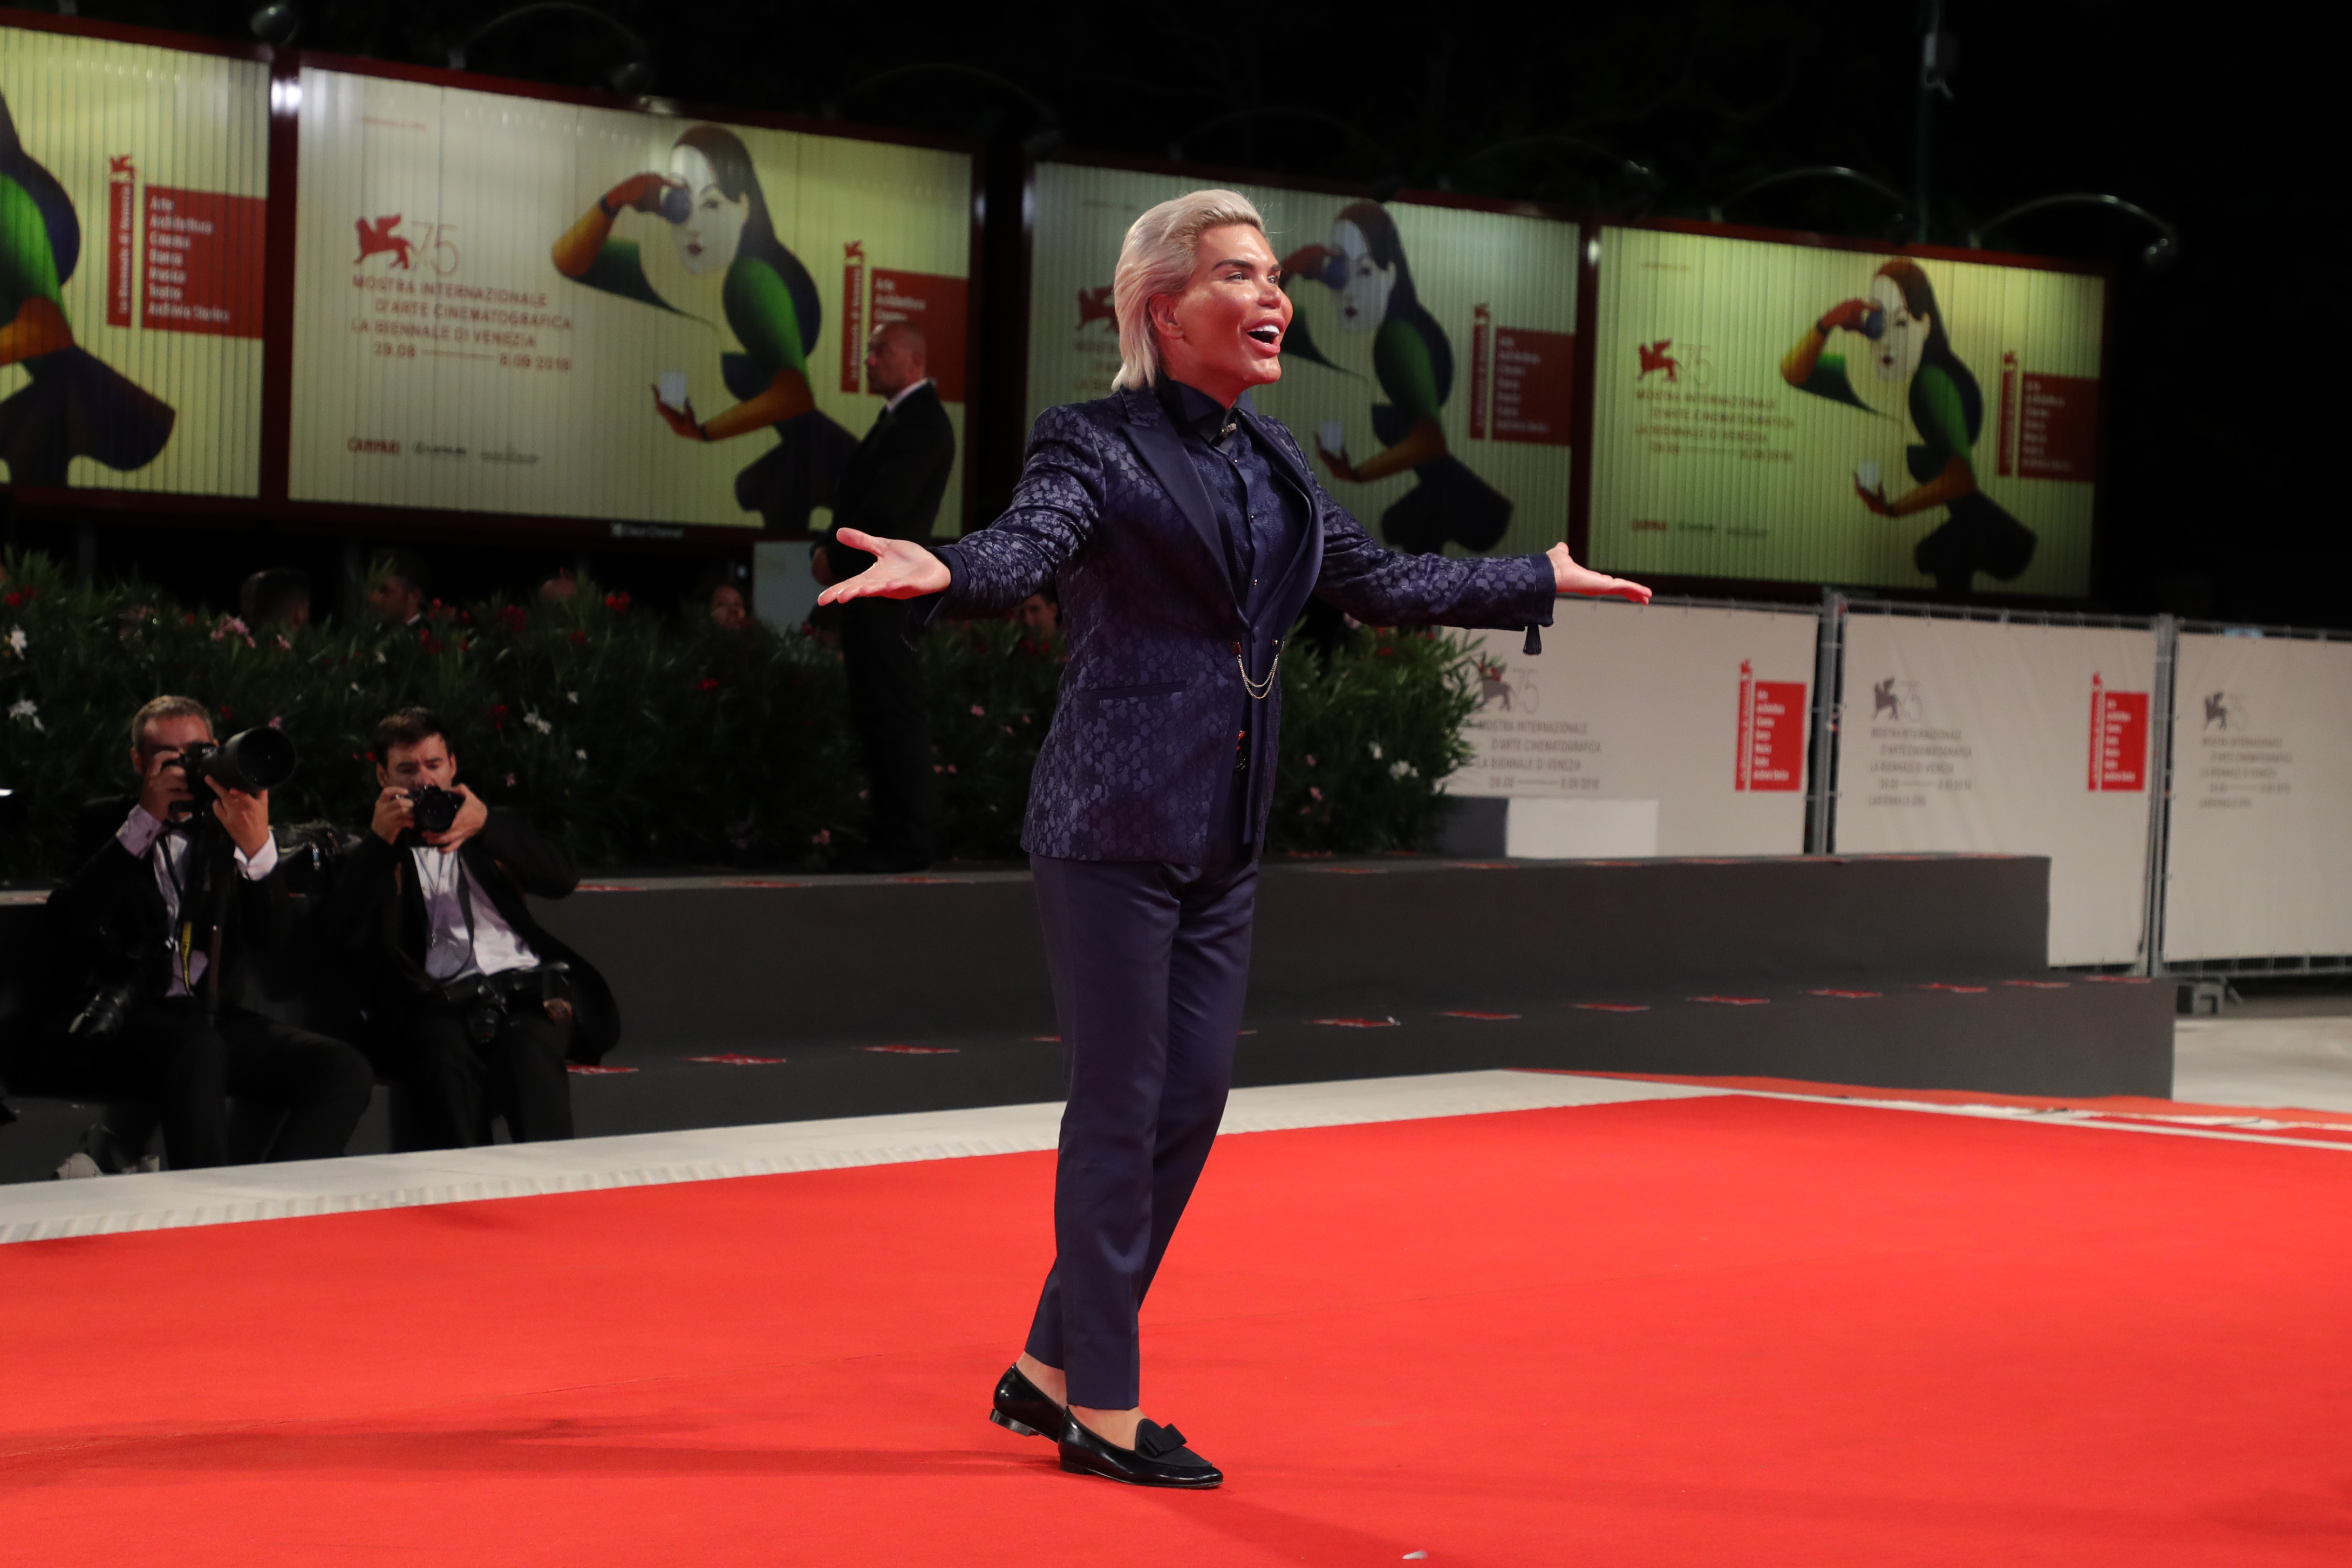 Rodrigo Alves walks the red carpet ahead of the Ying (Shadow) And 2018 Jaeger-LeCoultre Glory To The Filmmaker Award to Zhang Yimou during the 75th Venice Film Festival at Sala Grande on September 6, 2018, in Venice, Italy. (Getty Images)